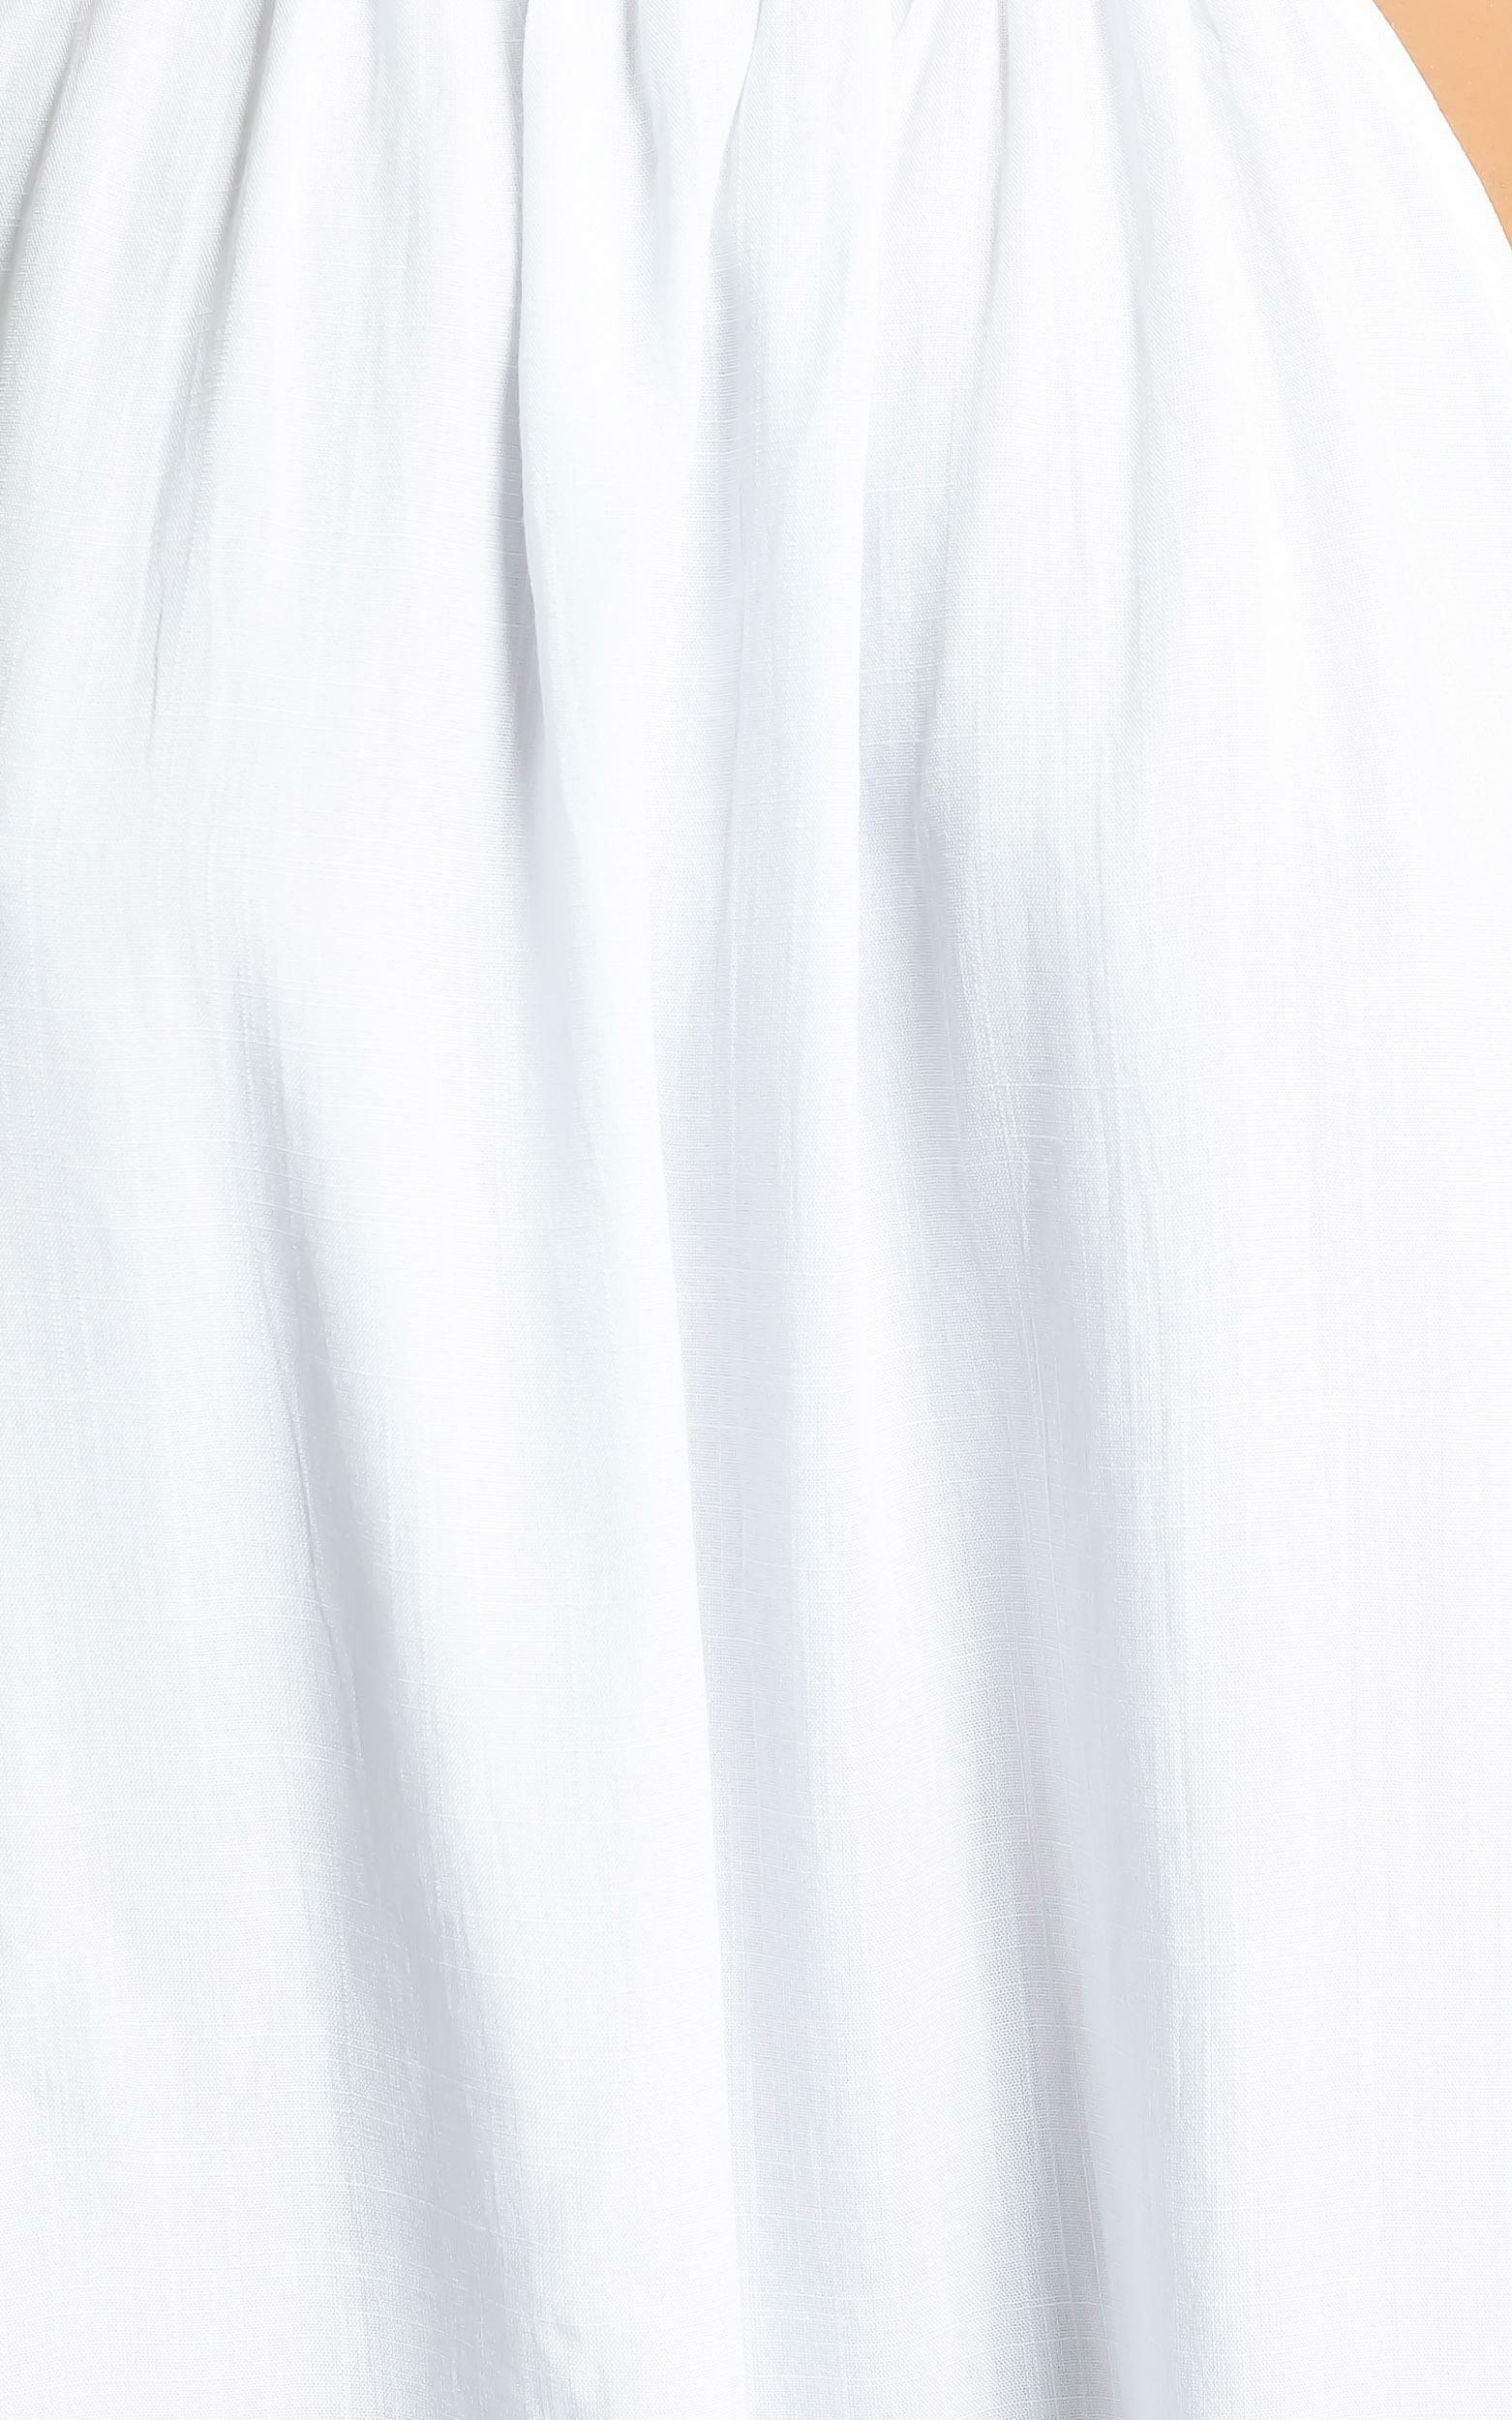 Meredith Dress in White - 6 (XS), White, hi-res image number null